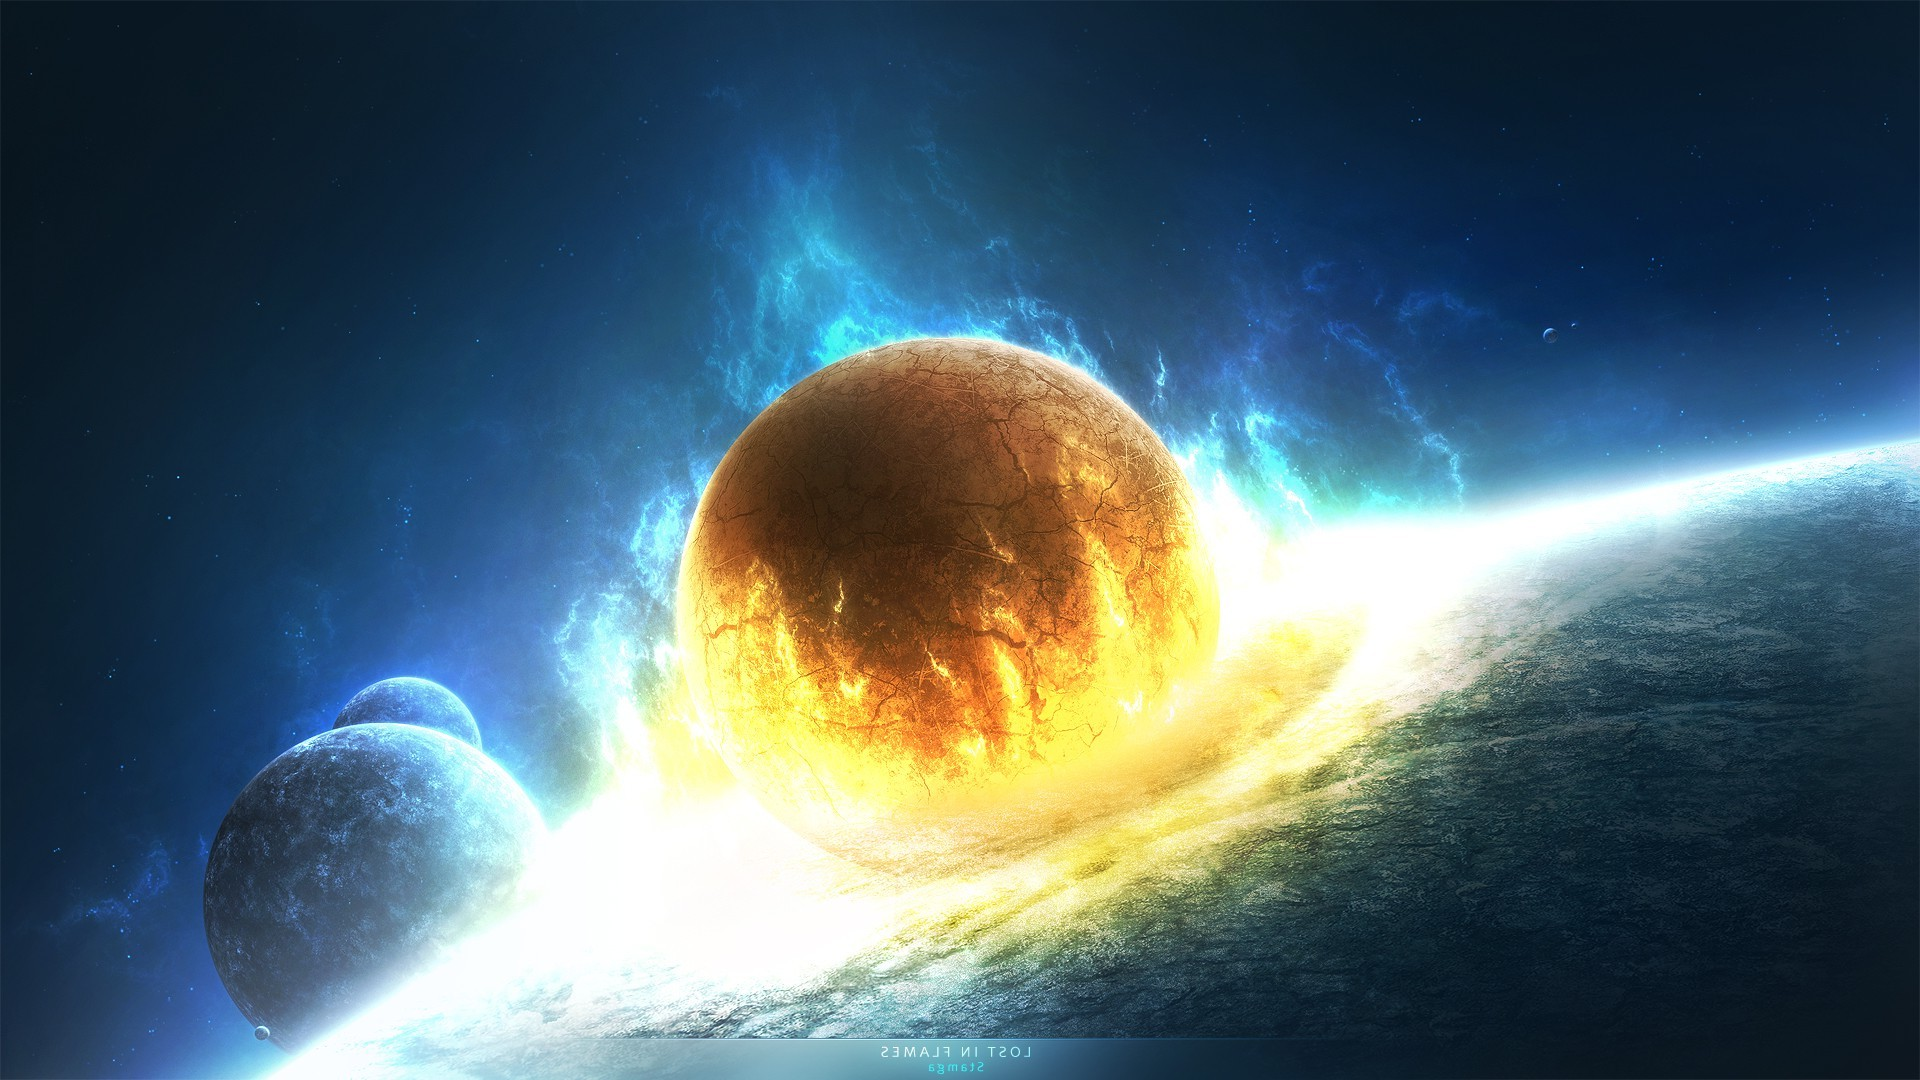 Explosion Wallpaper Abstract 3d Cosmos Collision Planet Wallpapers Hd Desktop And